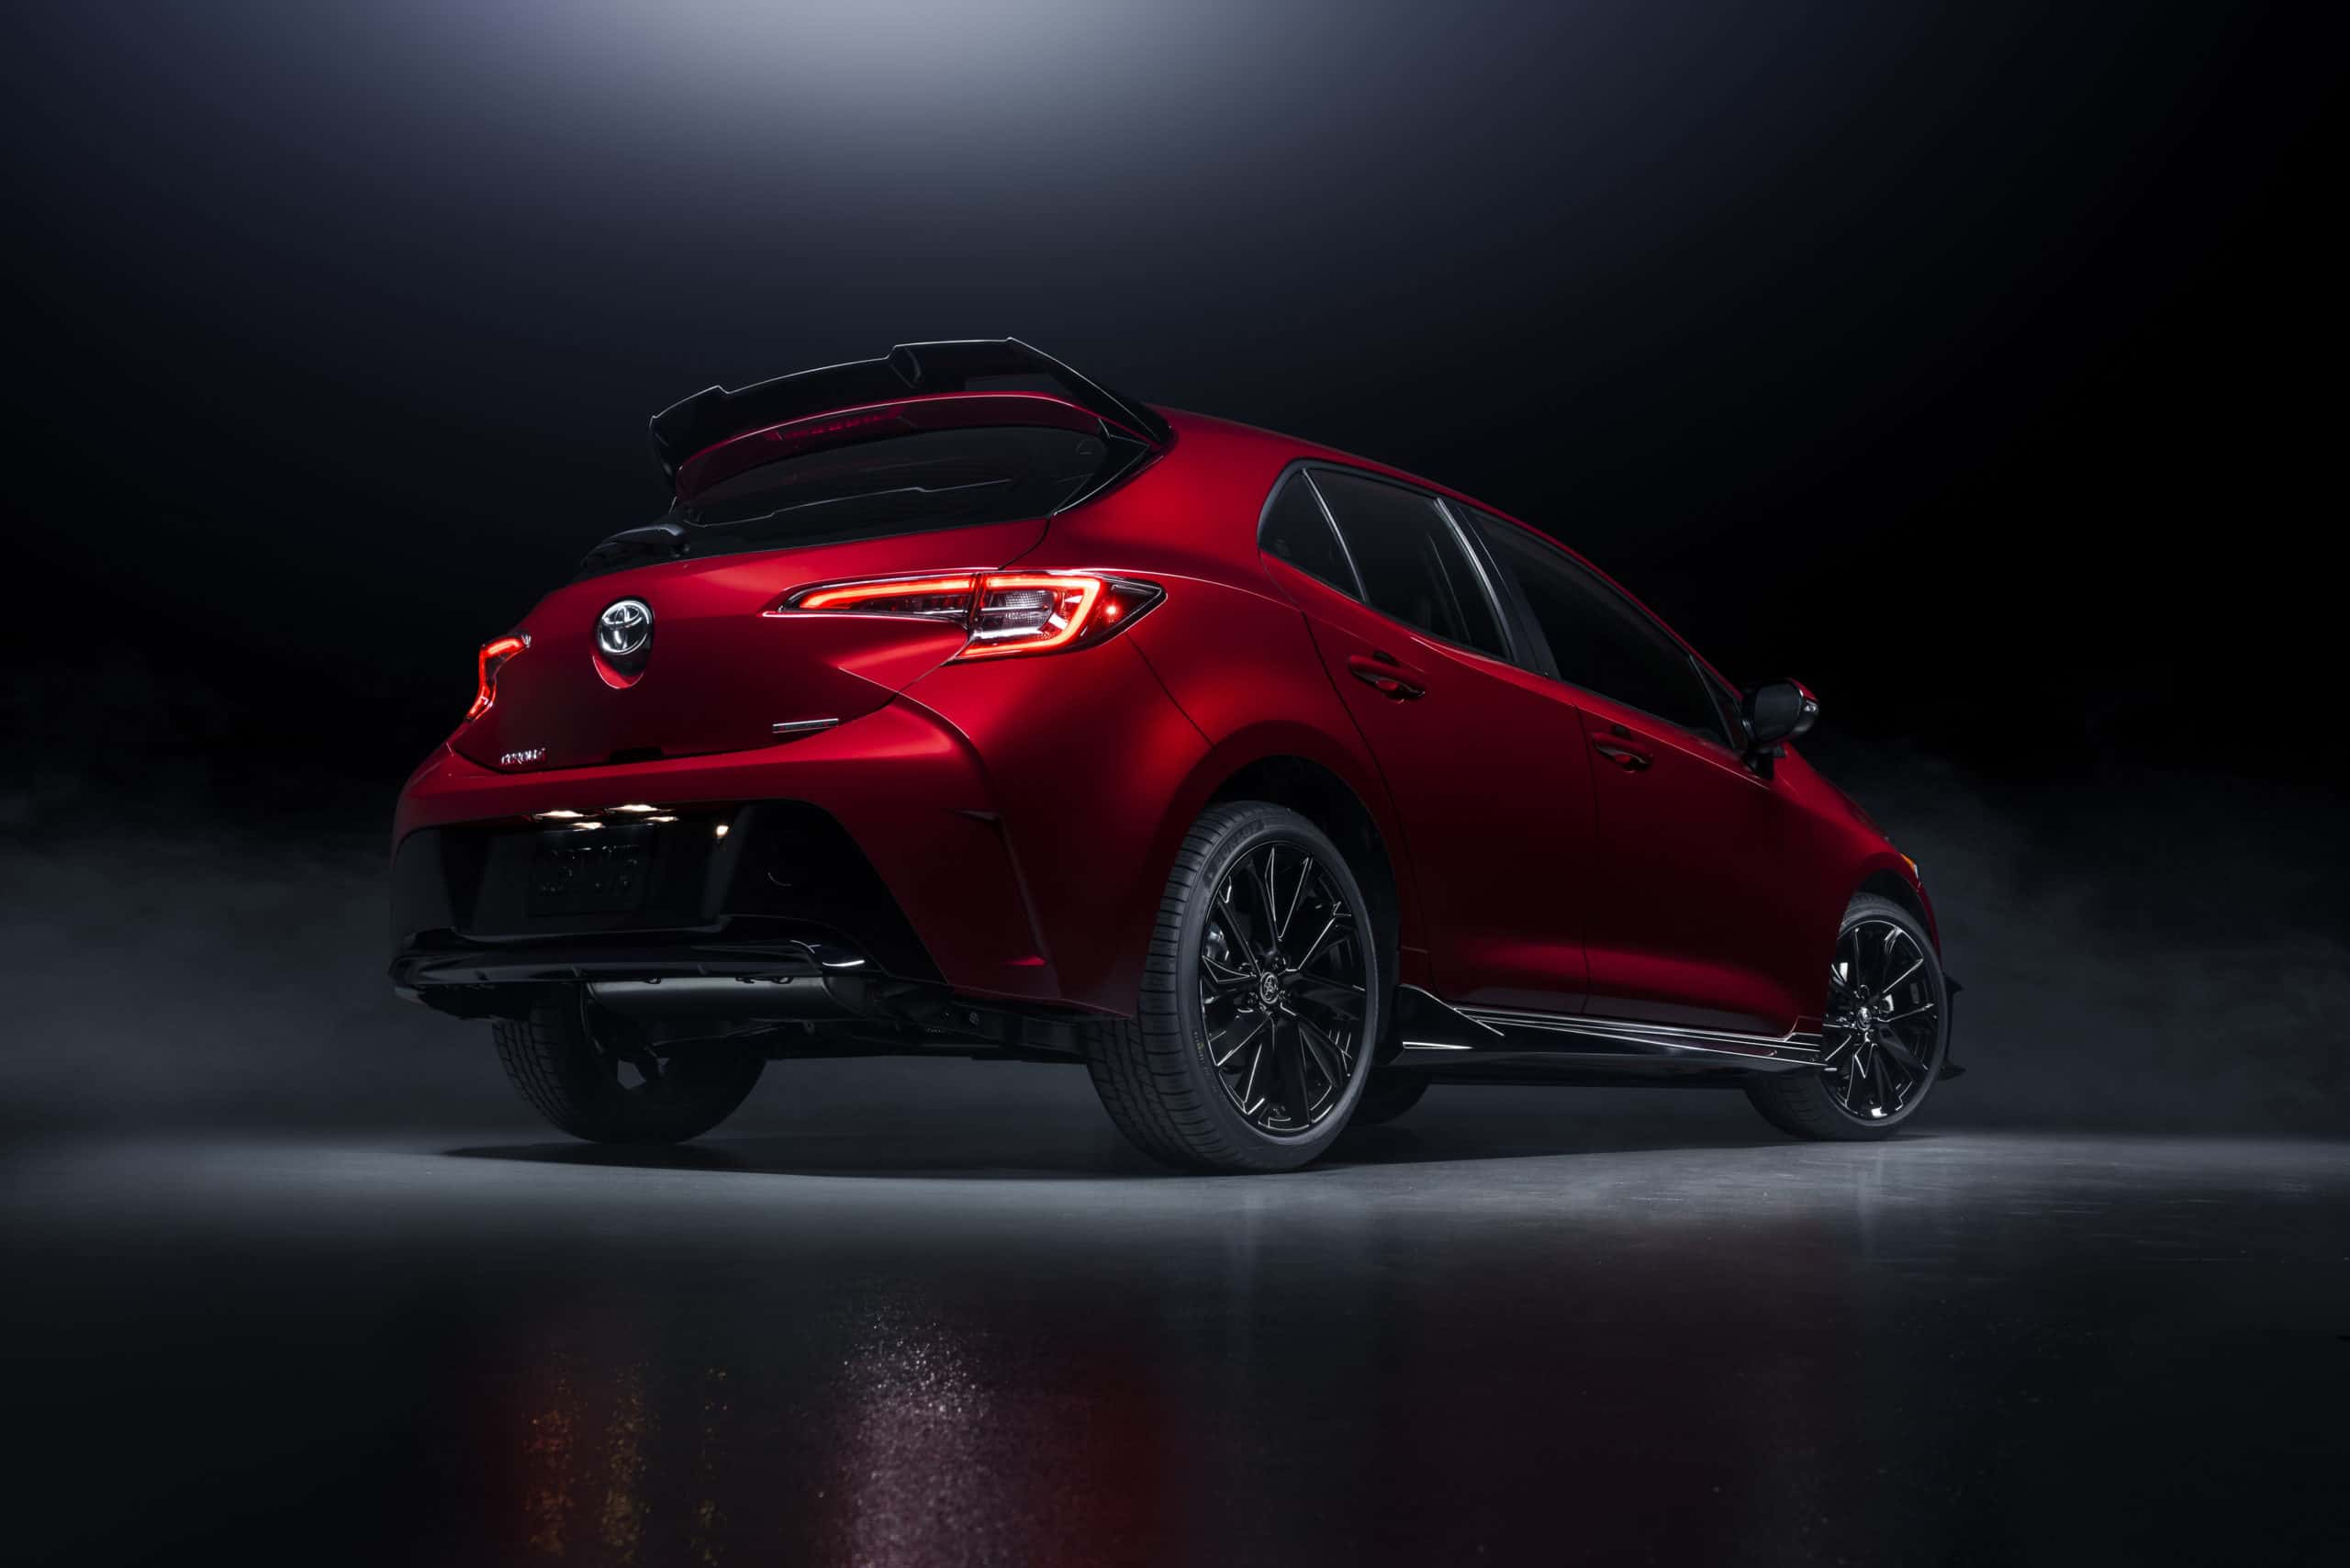 2021 Toyota Corolla Hatchback Special Edition rear three quarter studio photo